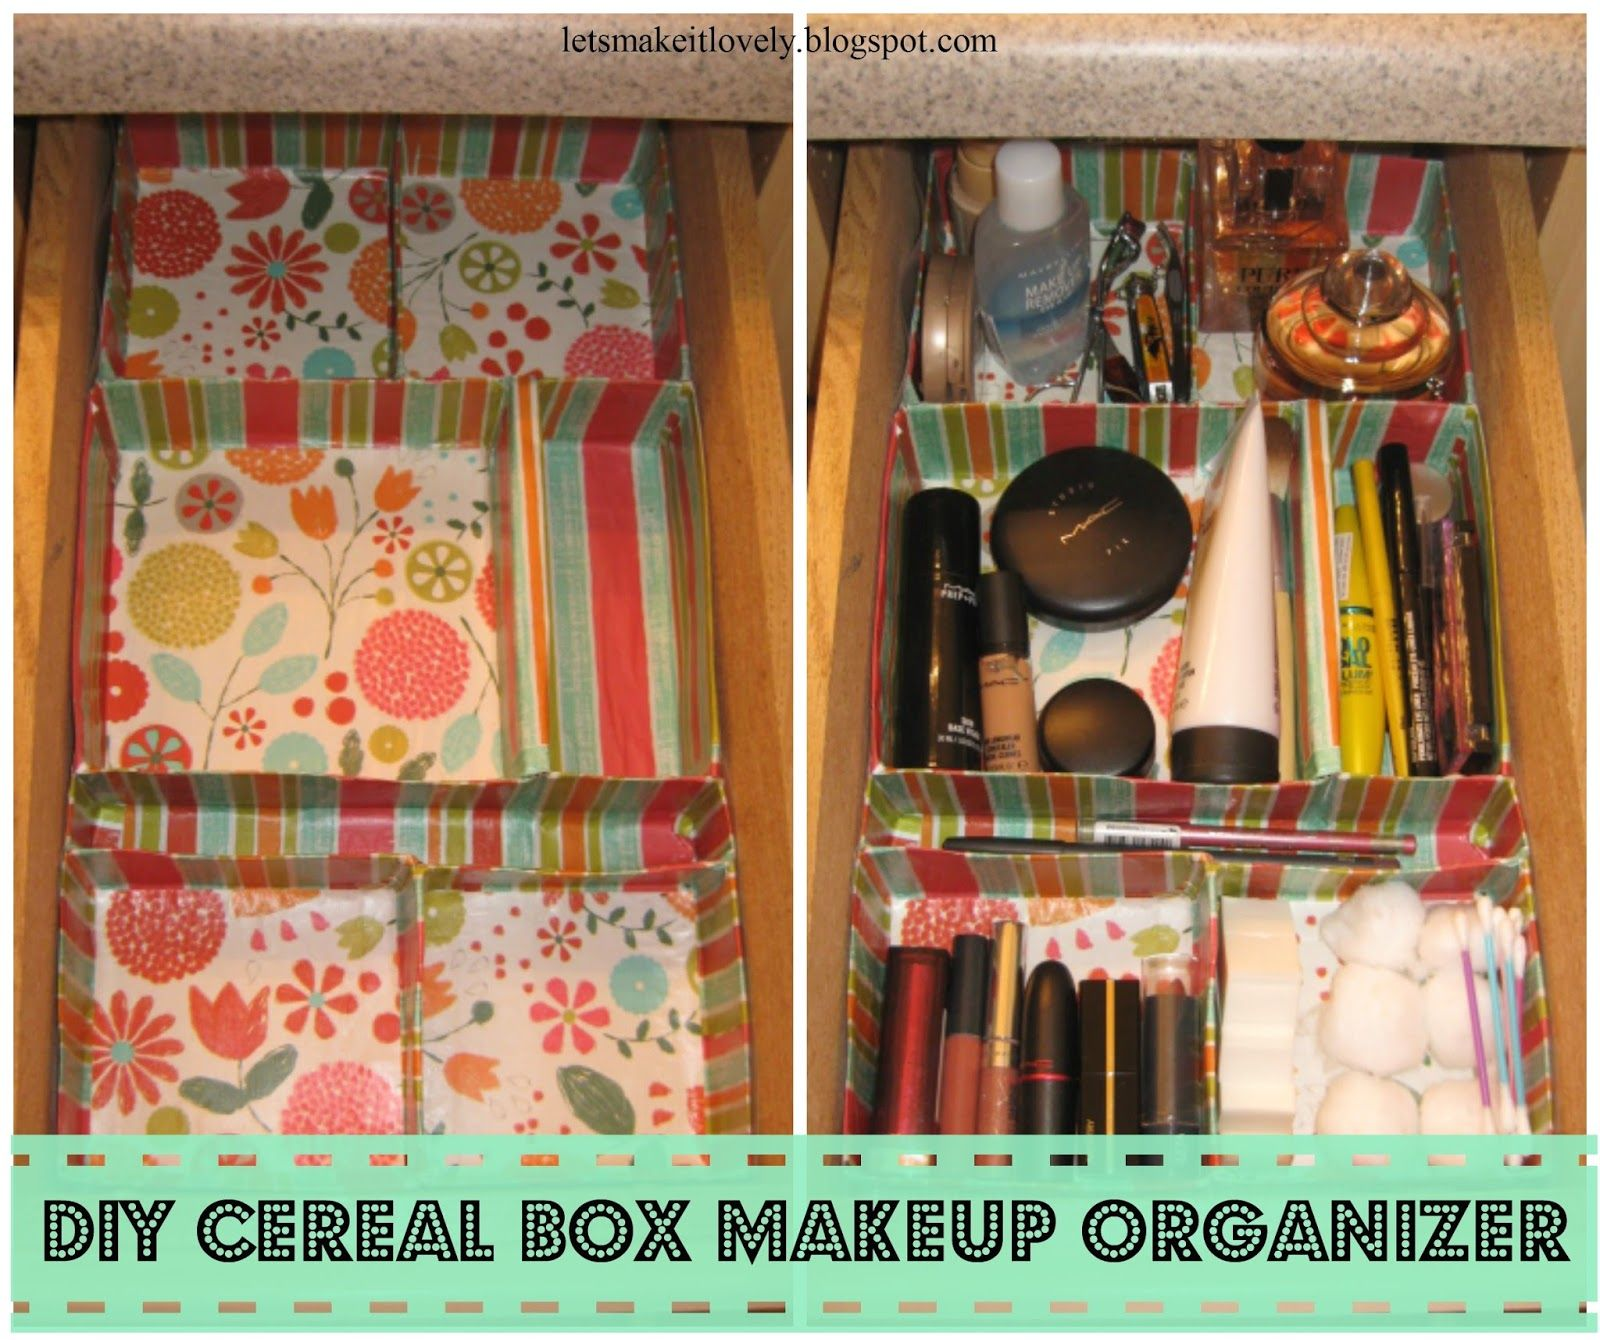 Diy Cereal Box Makeup Organizer Love This Customizable, Inexpensive, And